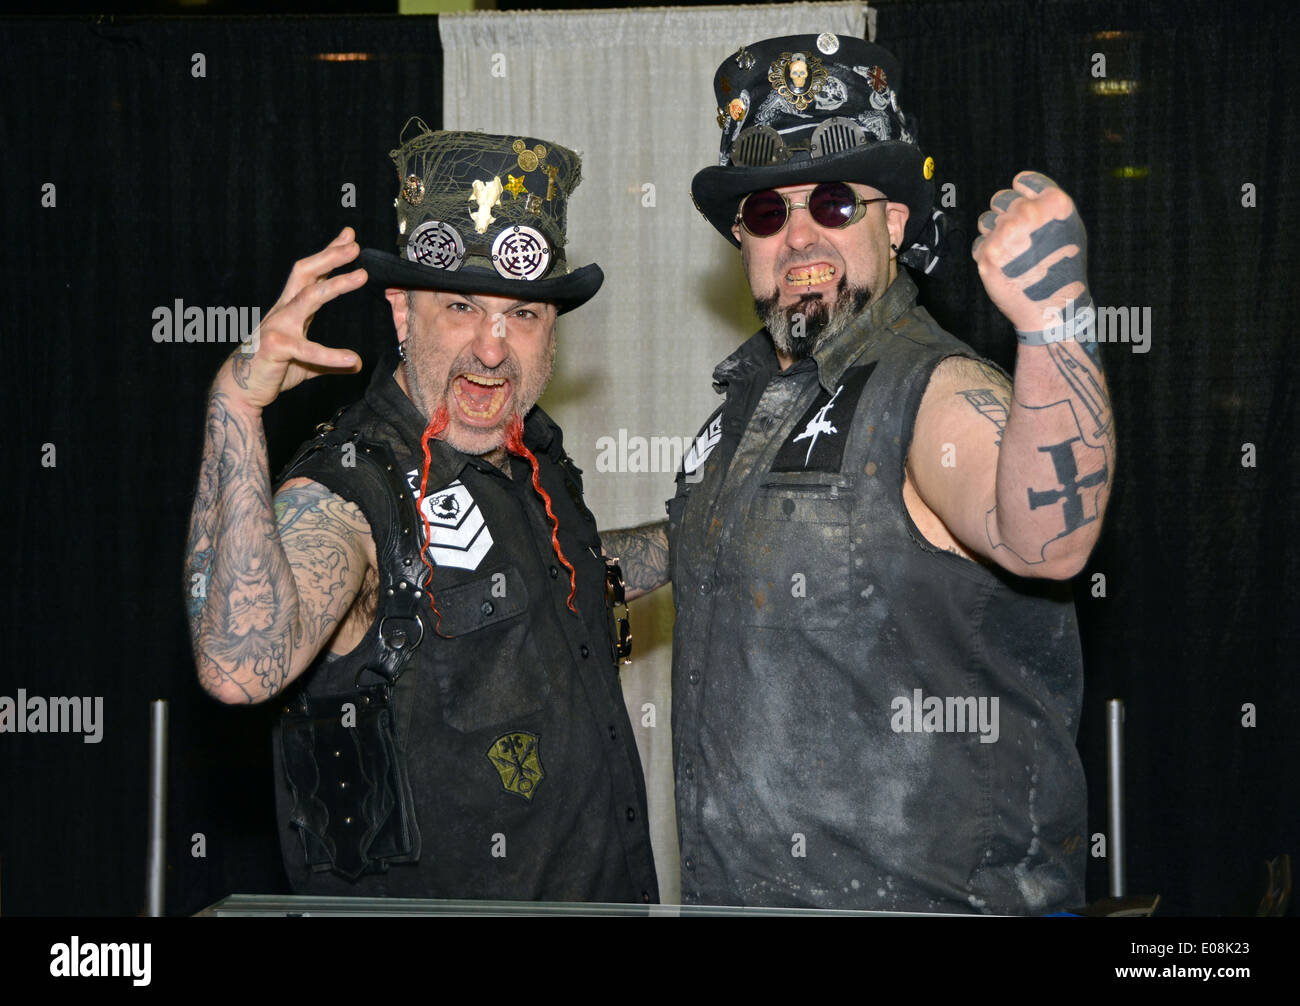 Portrait if Syx (l) and his friend Seven in top hats at the New York Tattoo Festival in Uniondale, Long Island, New York - Stock Image